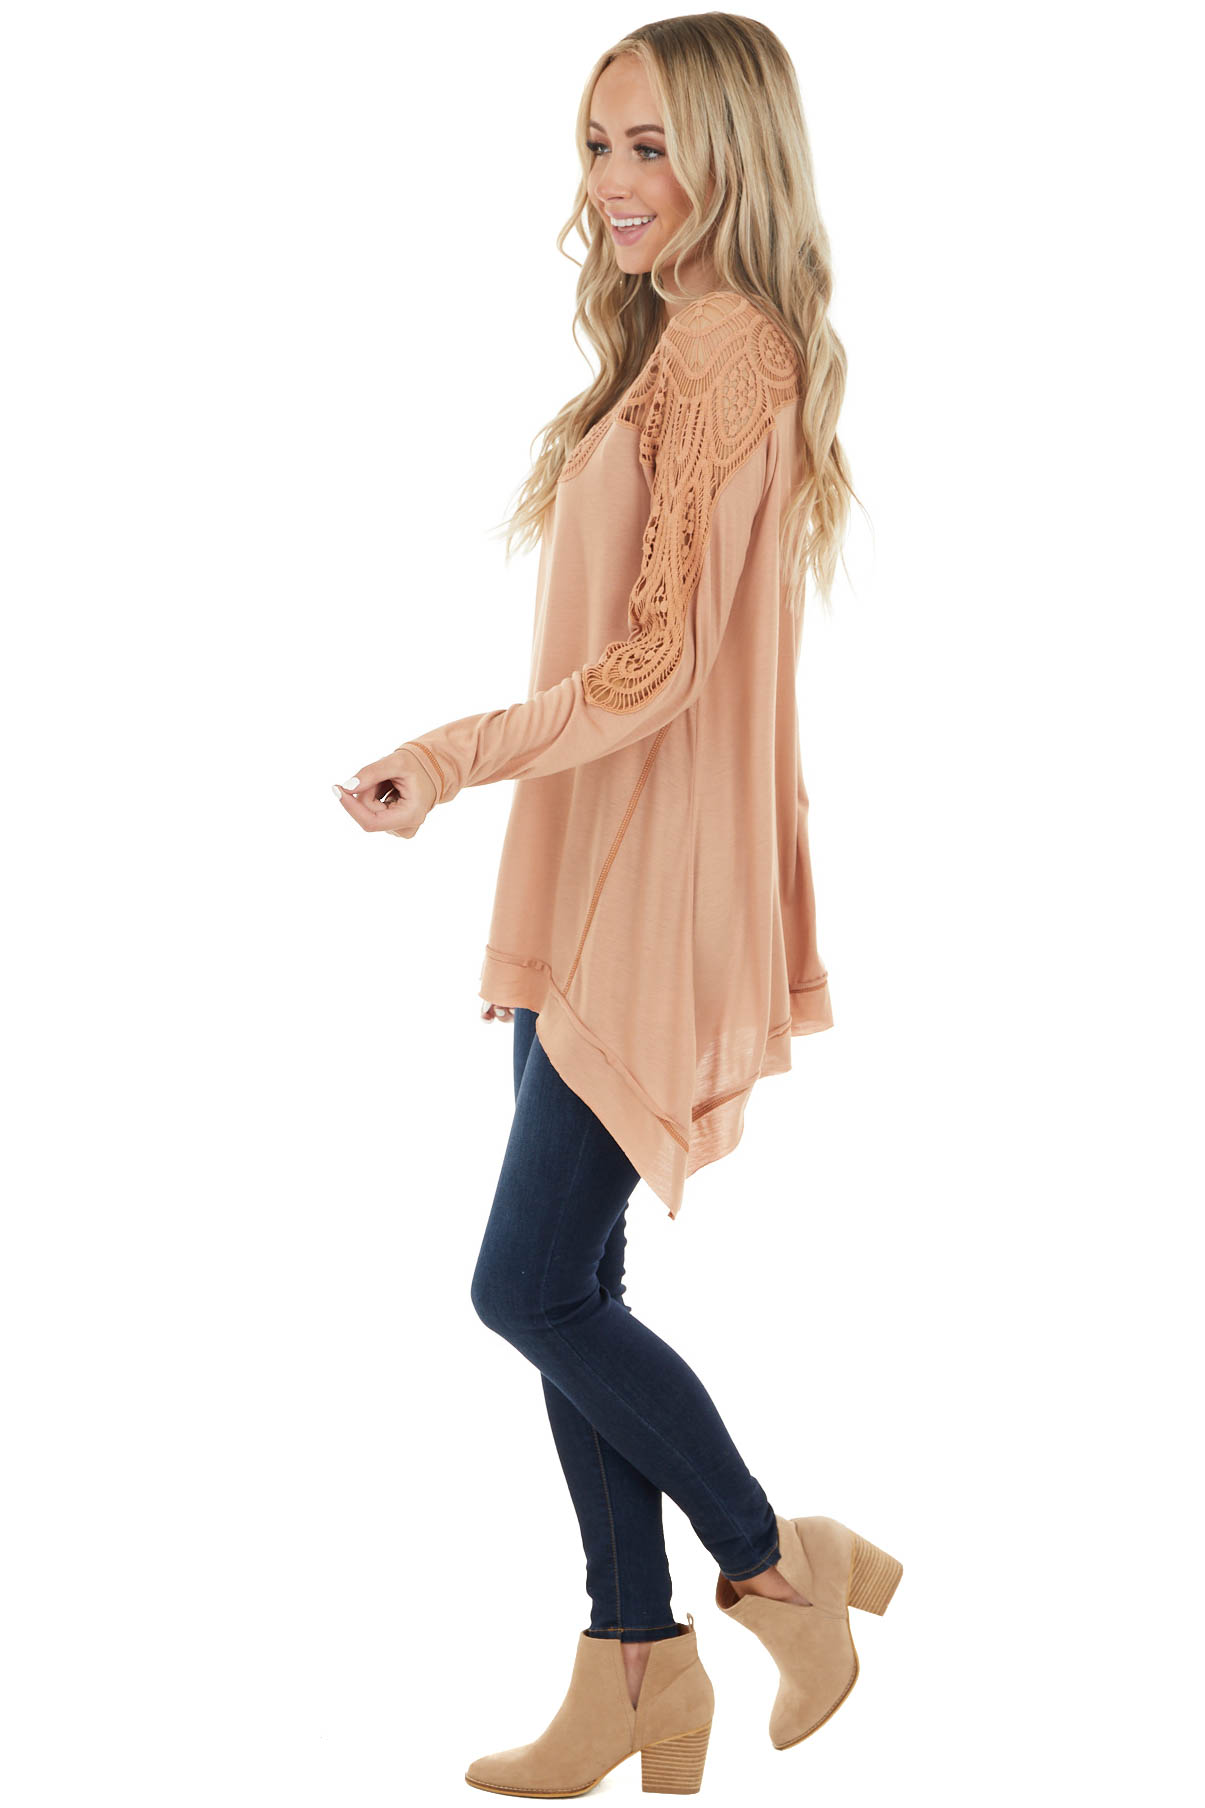 Apricot Long Sleeve Knit Top with Crocheted Neckline